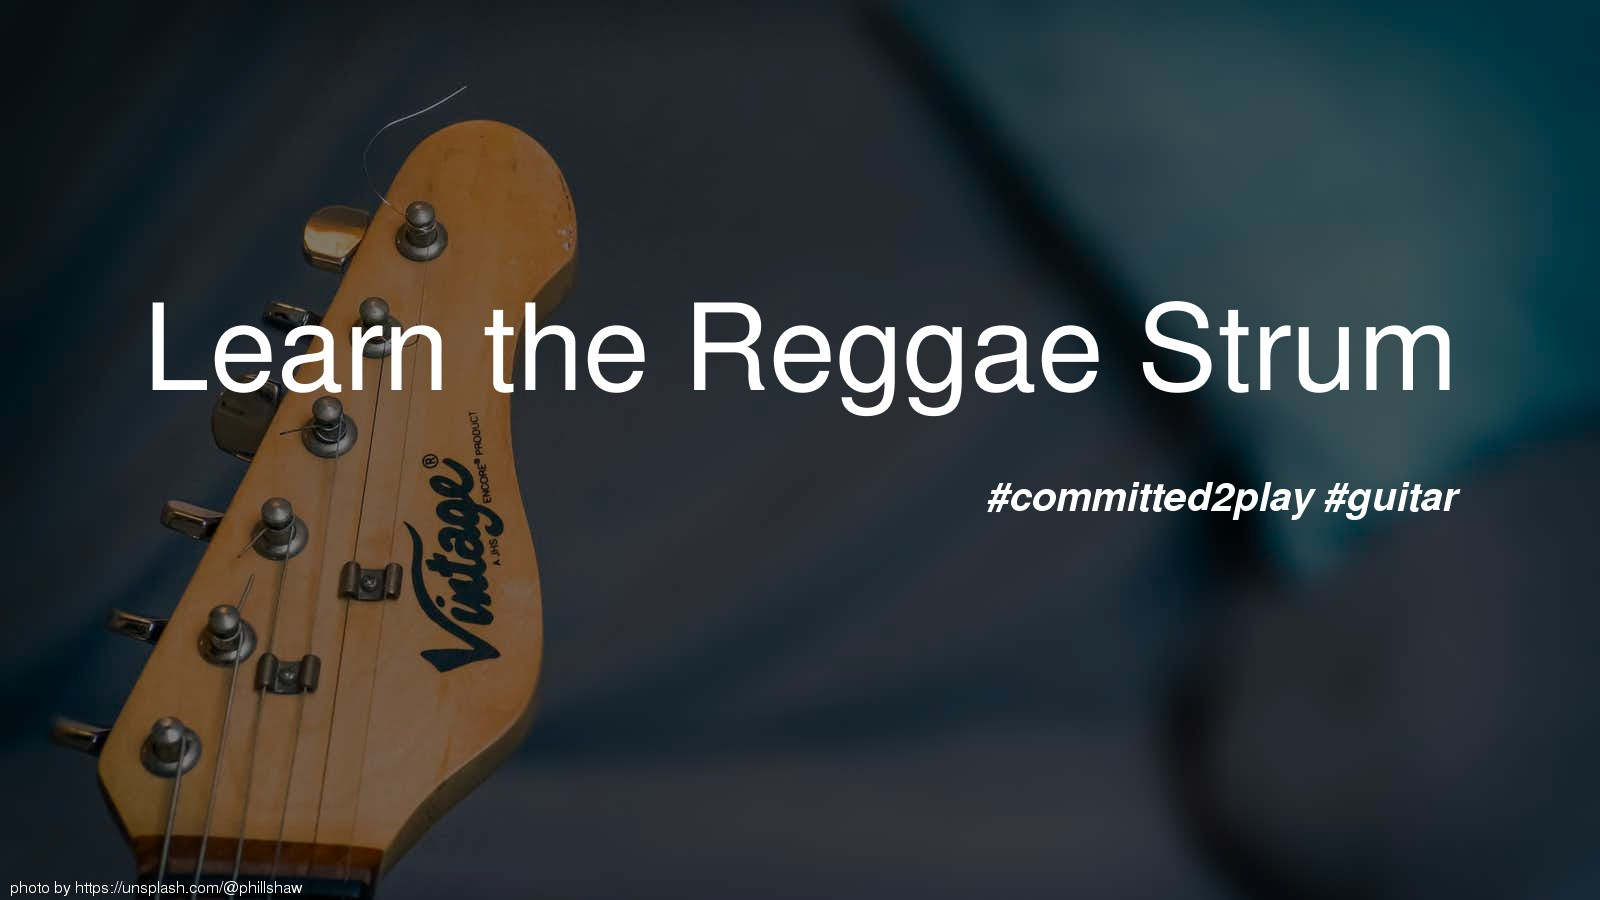 Learn the Reggae Strum